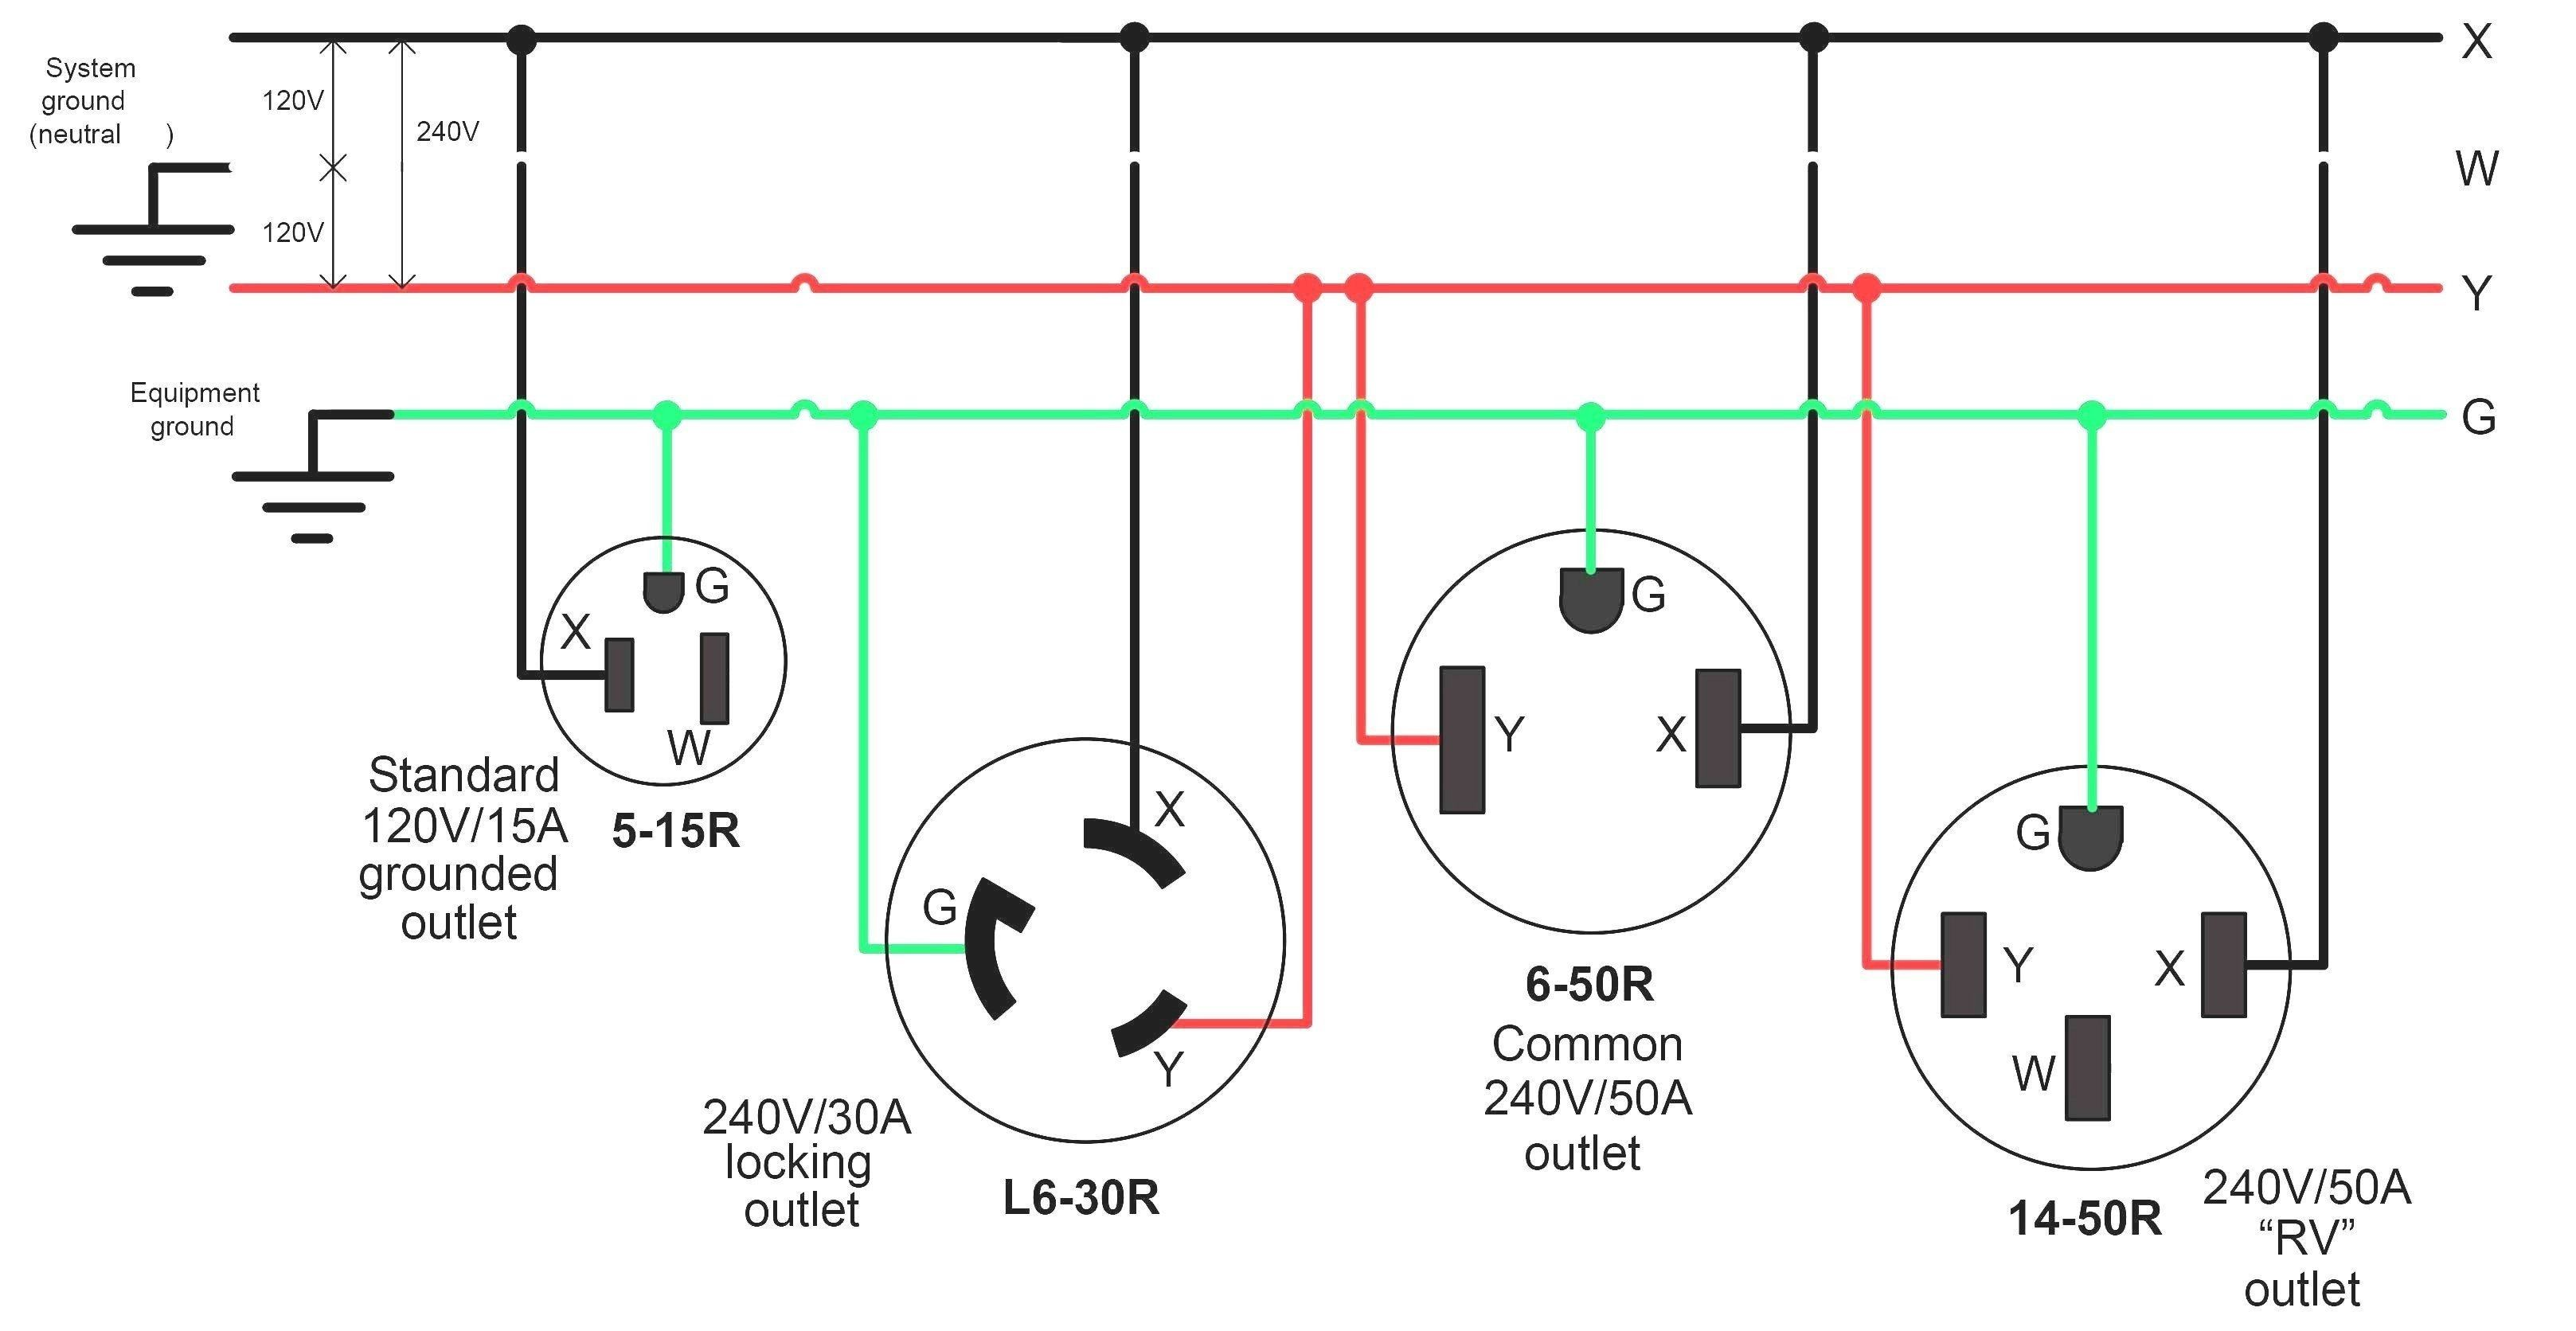 Unique Ac Wiring Color Diagram Wiringdiagram Diagramming Diagramm Visuals Visualisation Graphic Outlet Wiring Electrical Plug Wiring 3 Way Switch Wiring